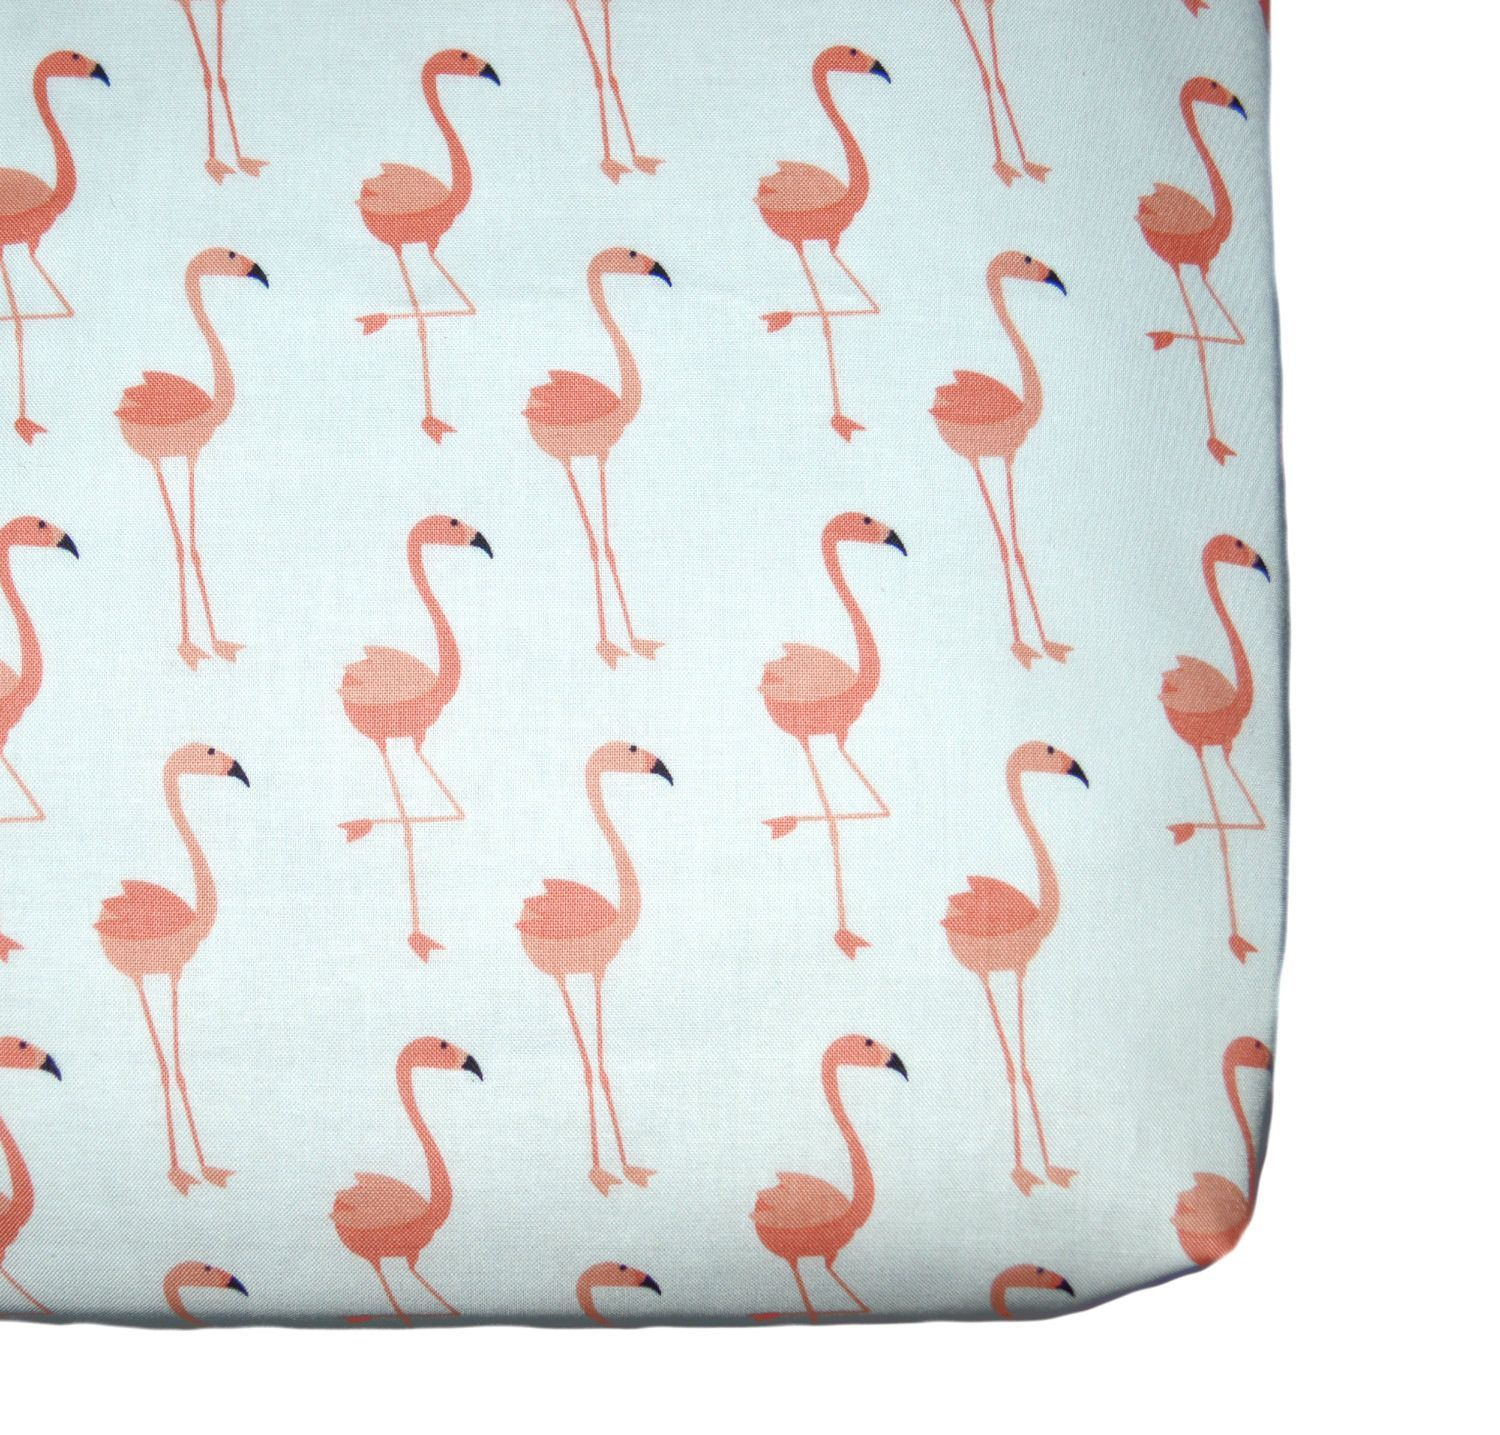 100 cotton fitted crib sheet for a standard size crib toddler